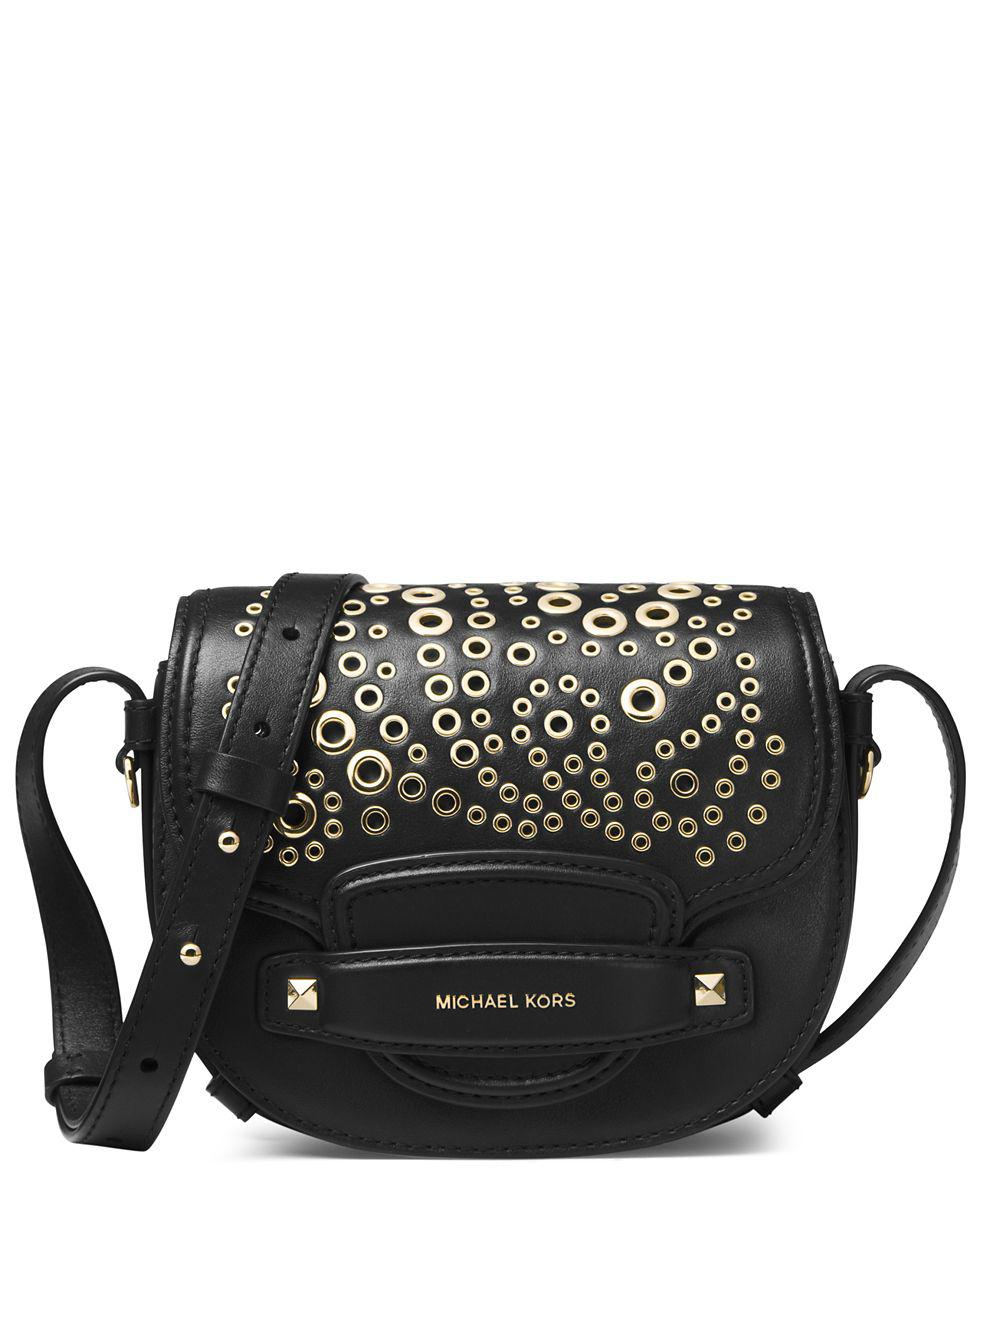 bc008515cb7d2 Michael Michael Kors Carysm Leather Saddle Crossbody Bag in Black - Lyst